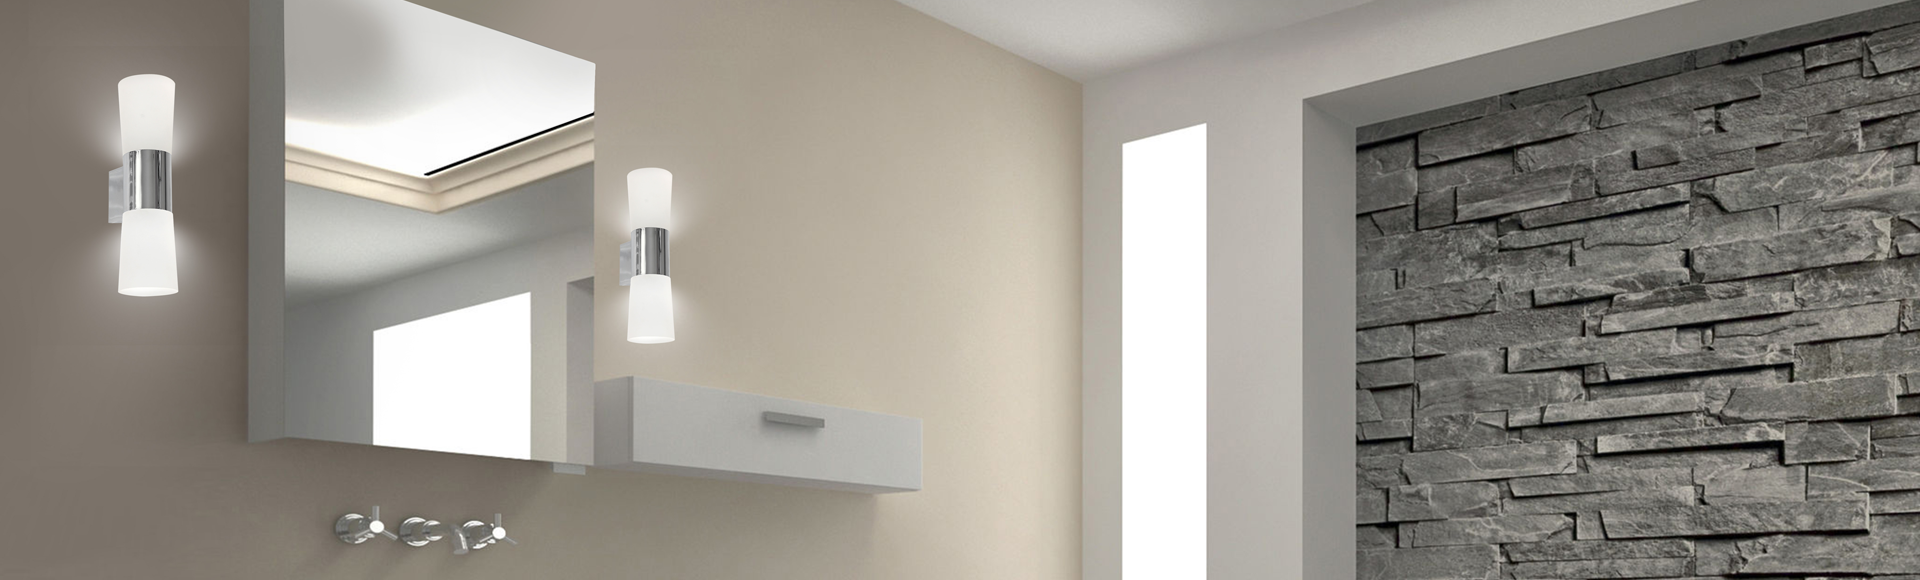 Modern bathroom wall lights